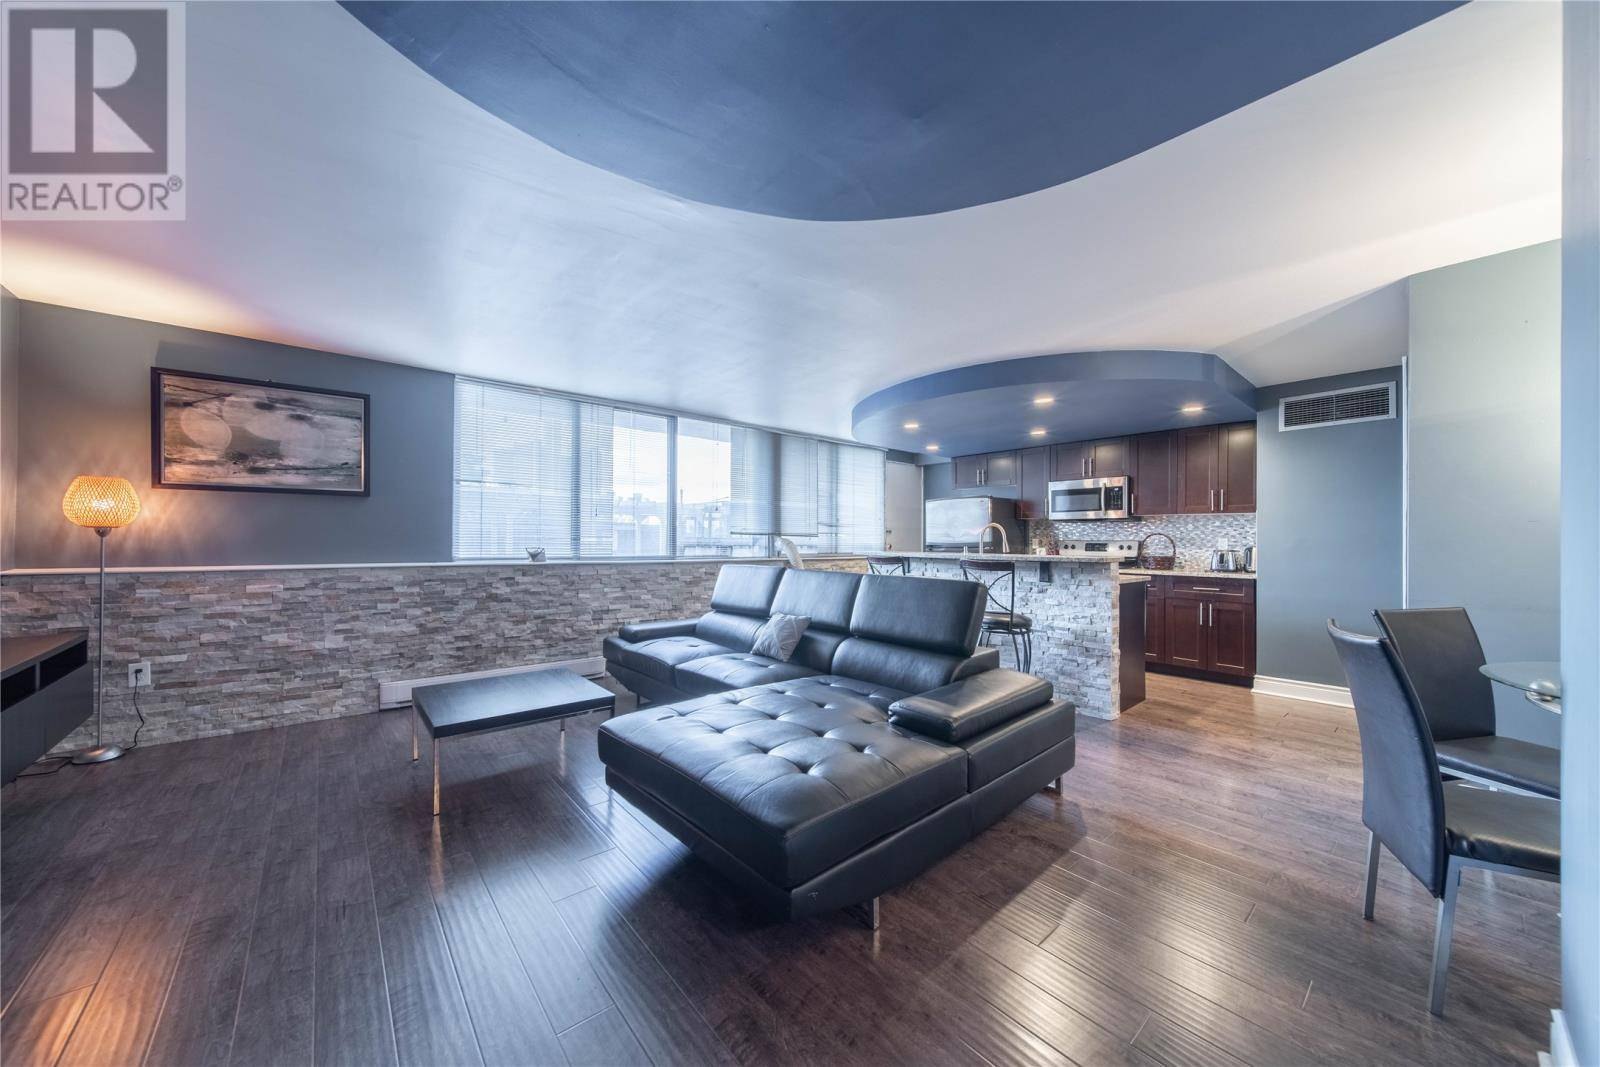 Condo for sale at 111 Riverside Dr East Unit 106 Windsor Ontario - MLS: 19025833